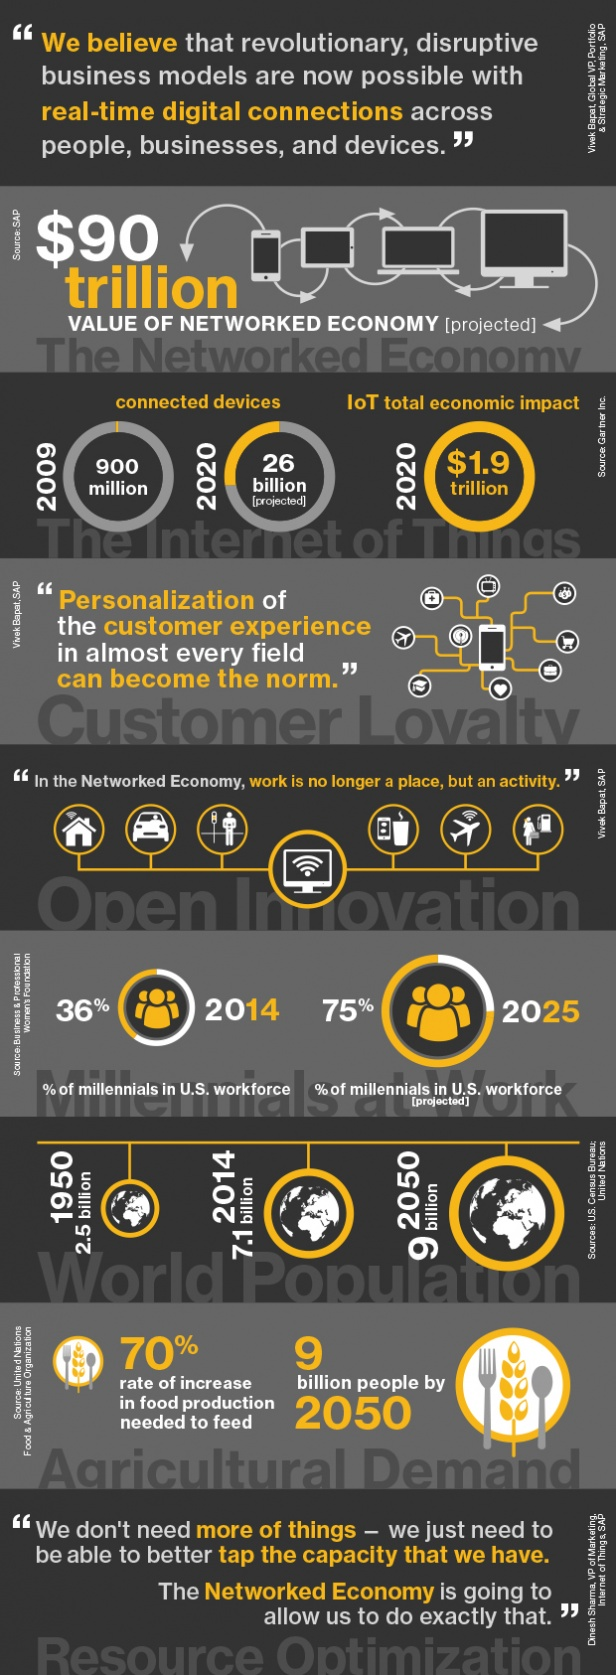 Infographic done by SAP